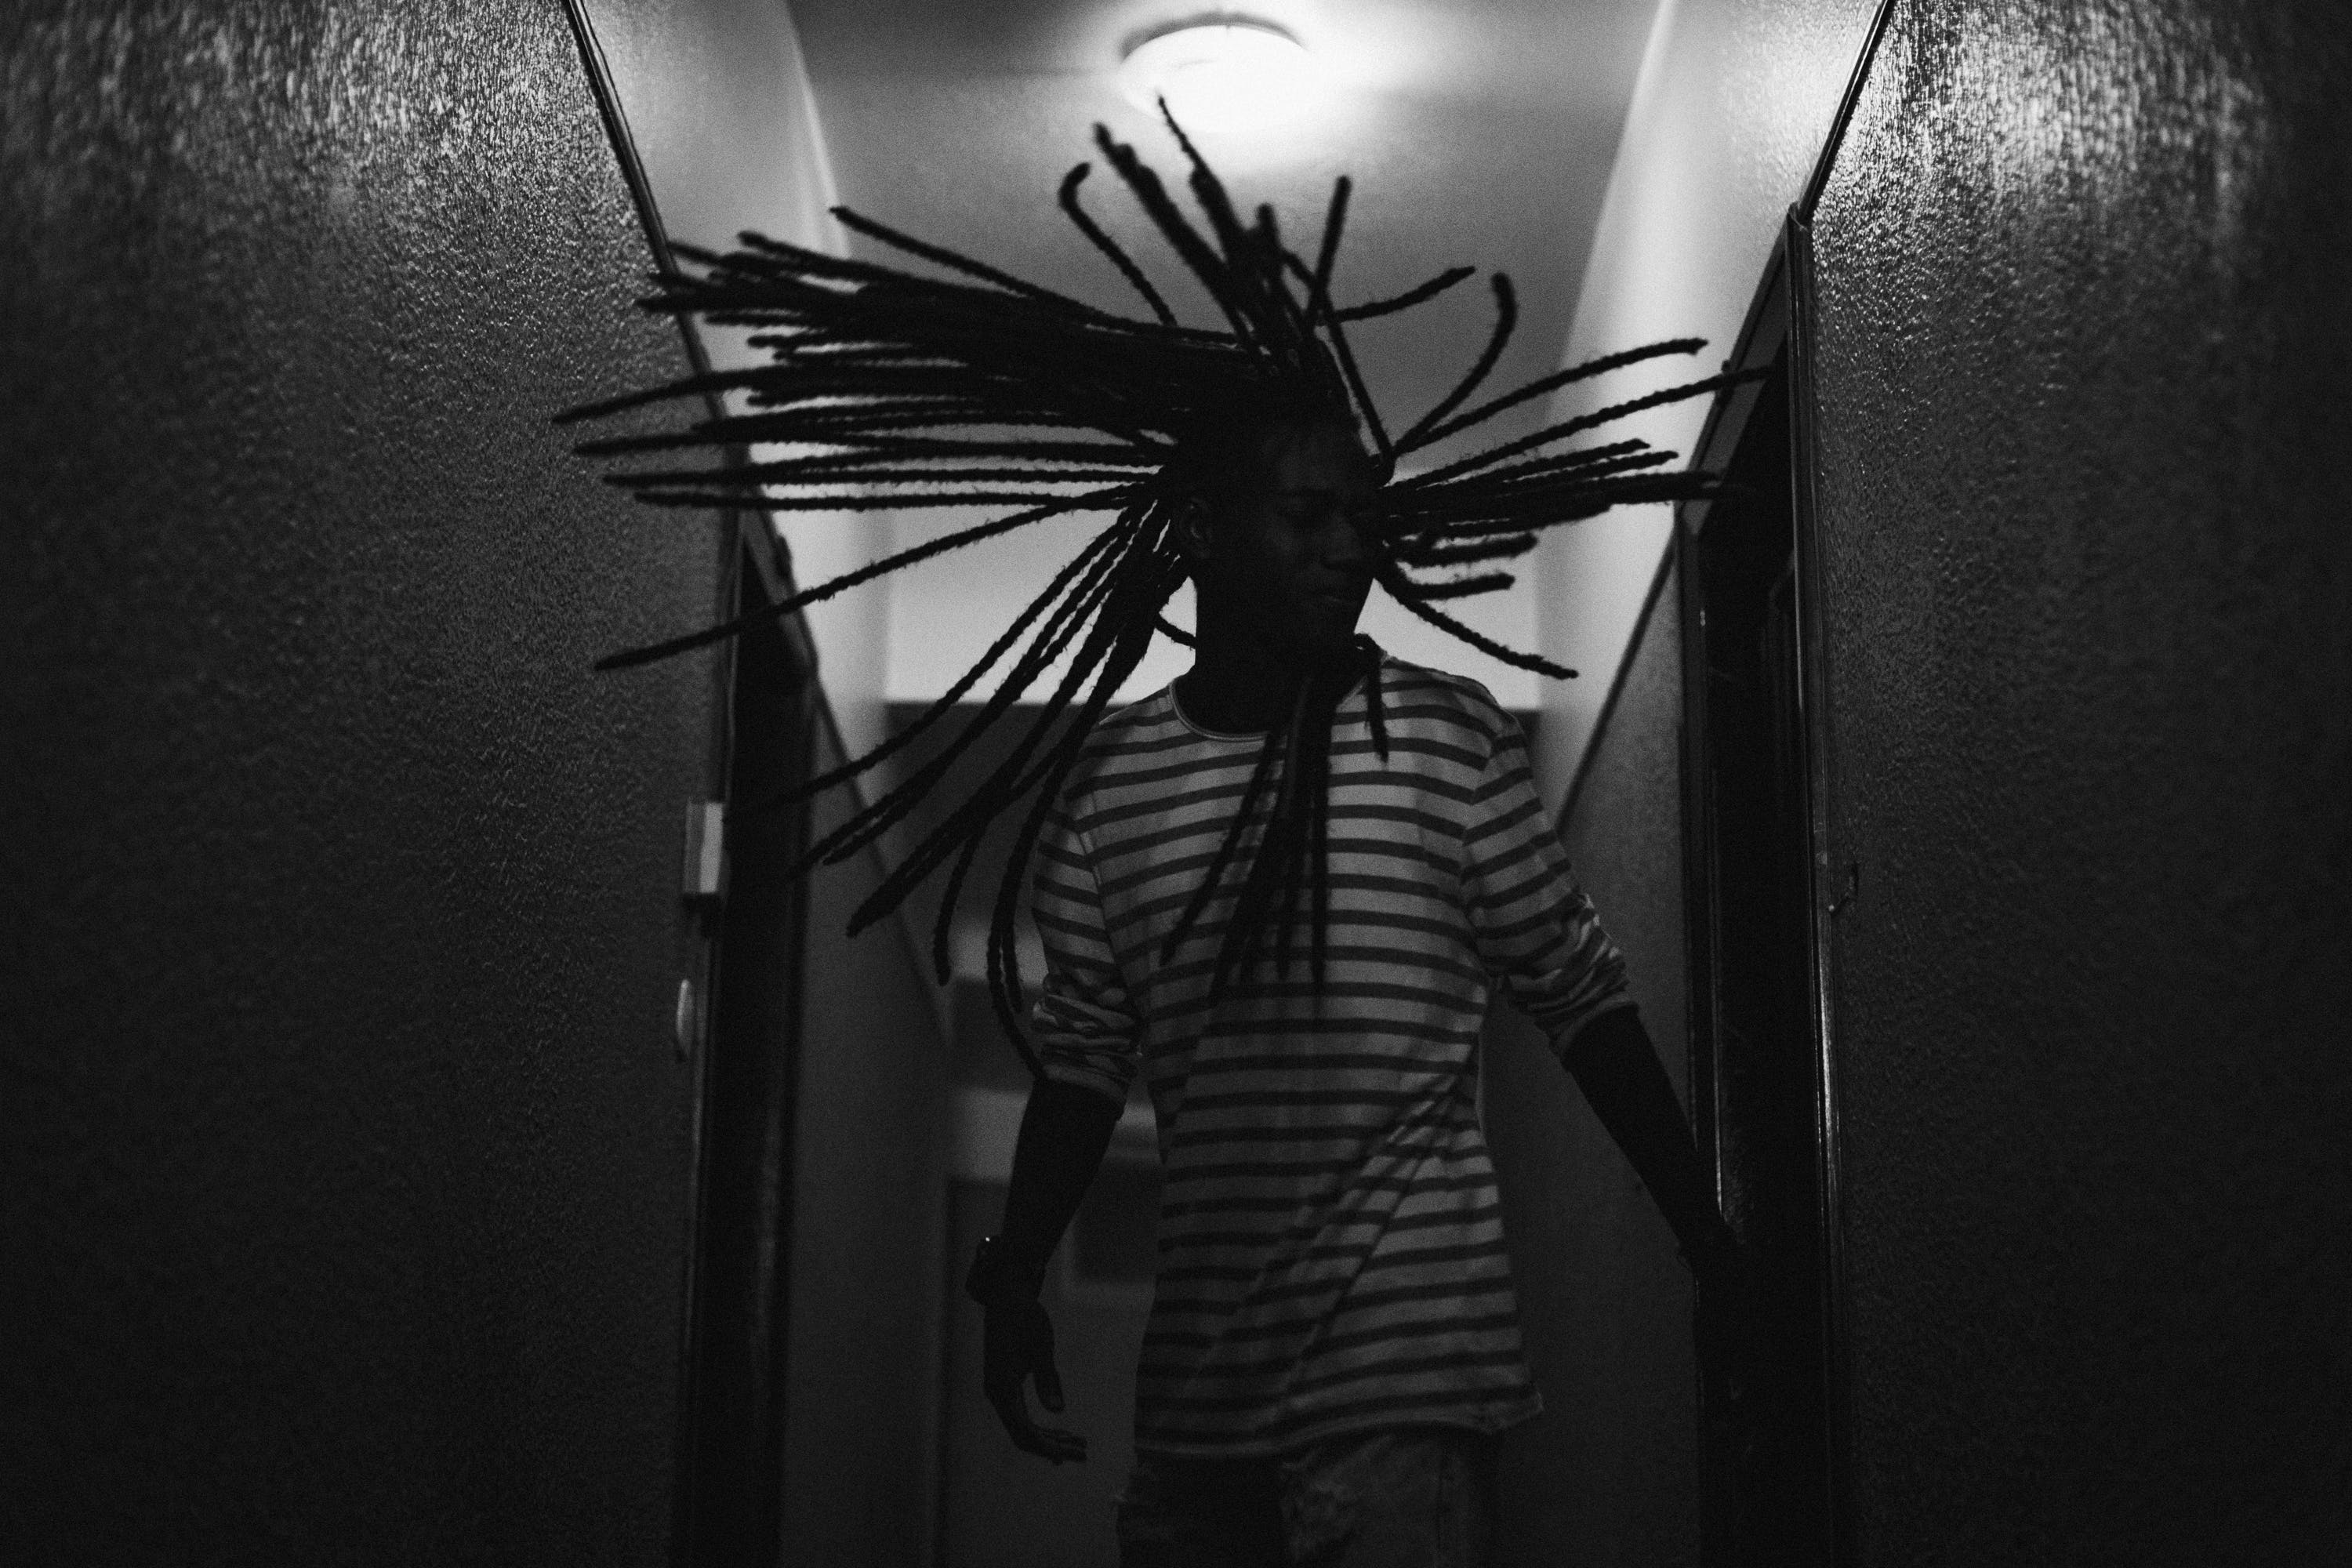 Grayscale Photography of Man Whipping His Dreadlocks Hair